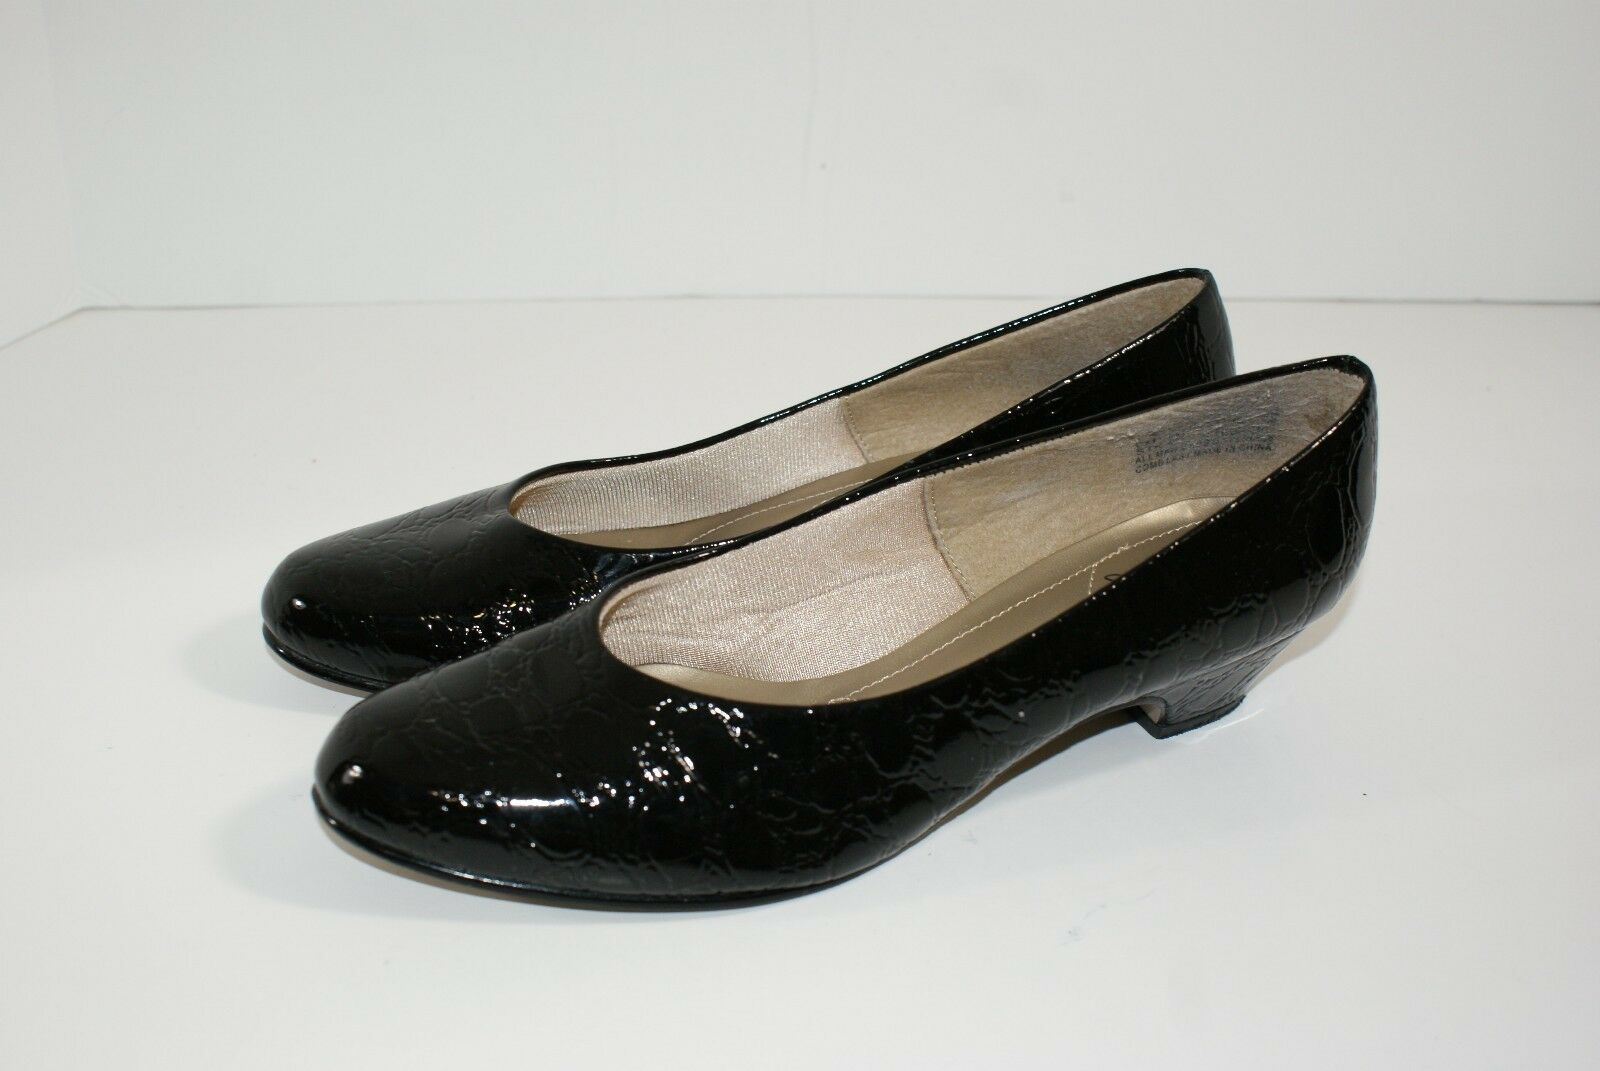 Soft Wedge Style Black Patent Leather Look Croc Pattern 1.5